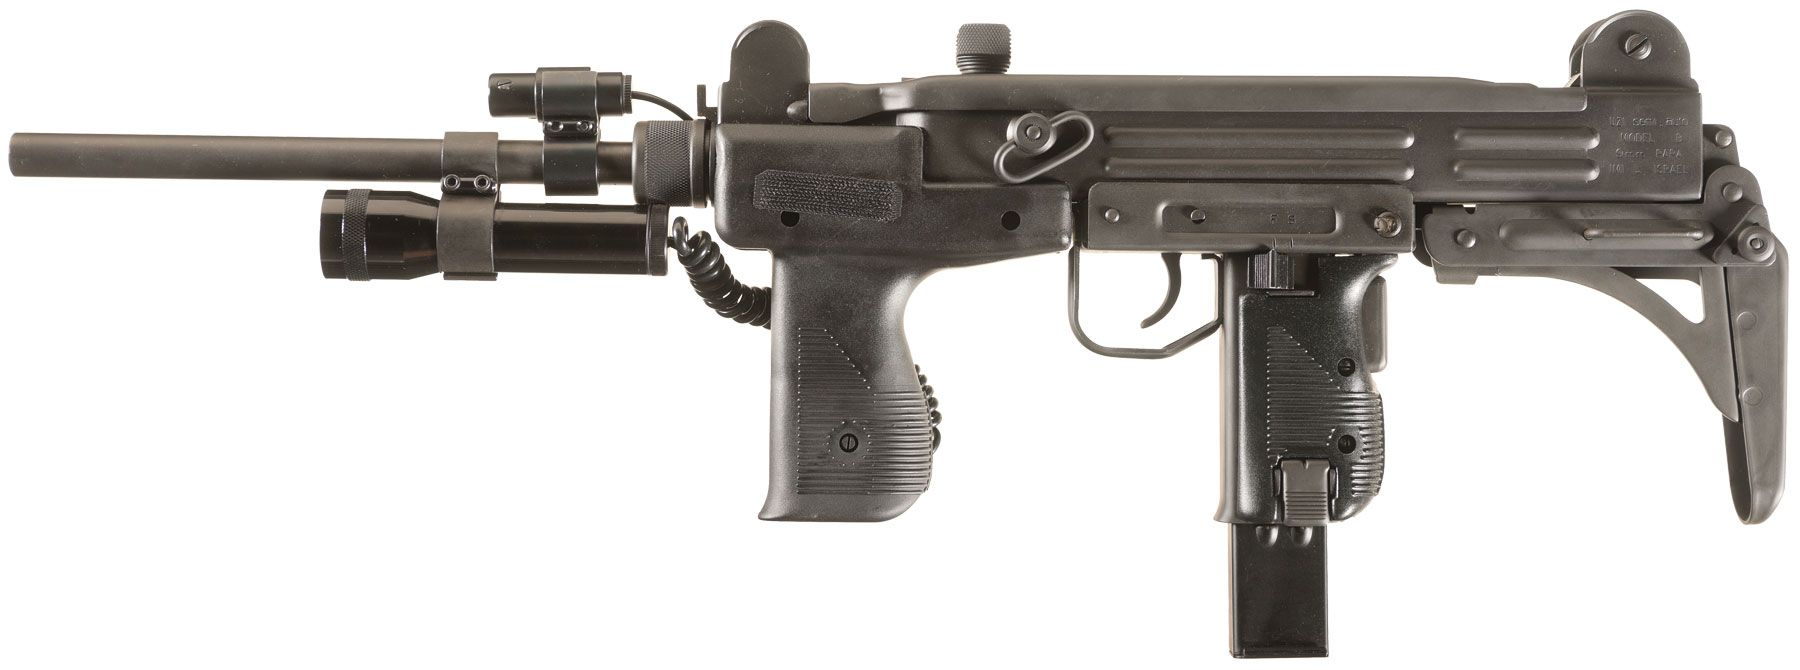 For sale trade imi uzi carbine made in israel 9mm - Israeli Military Industries Action Arms Model B Uzi Semi Automatic Carbine With Spare Magazines